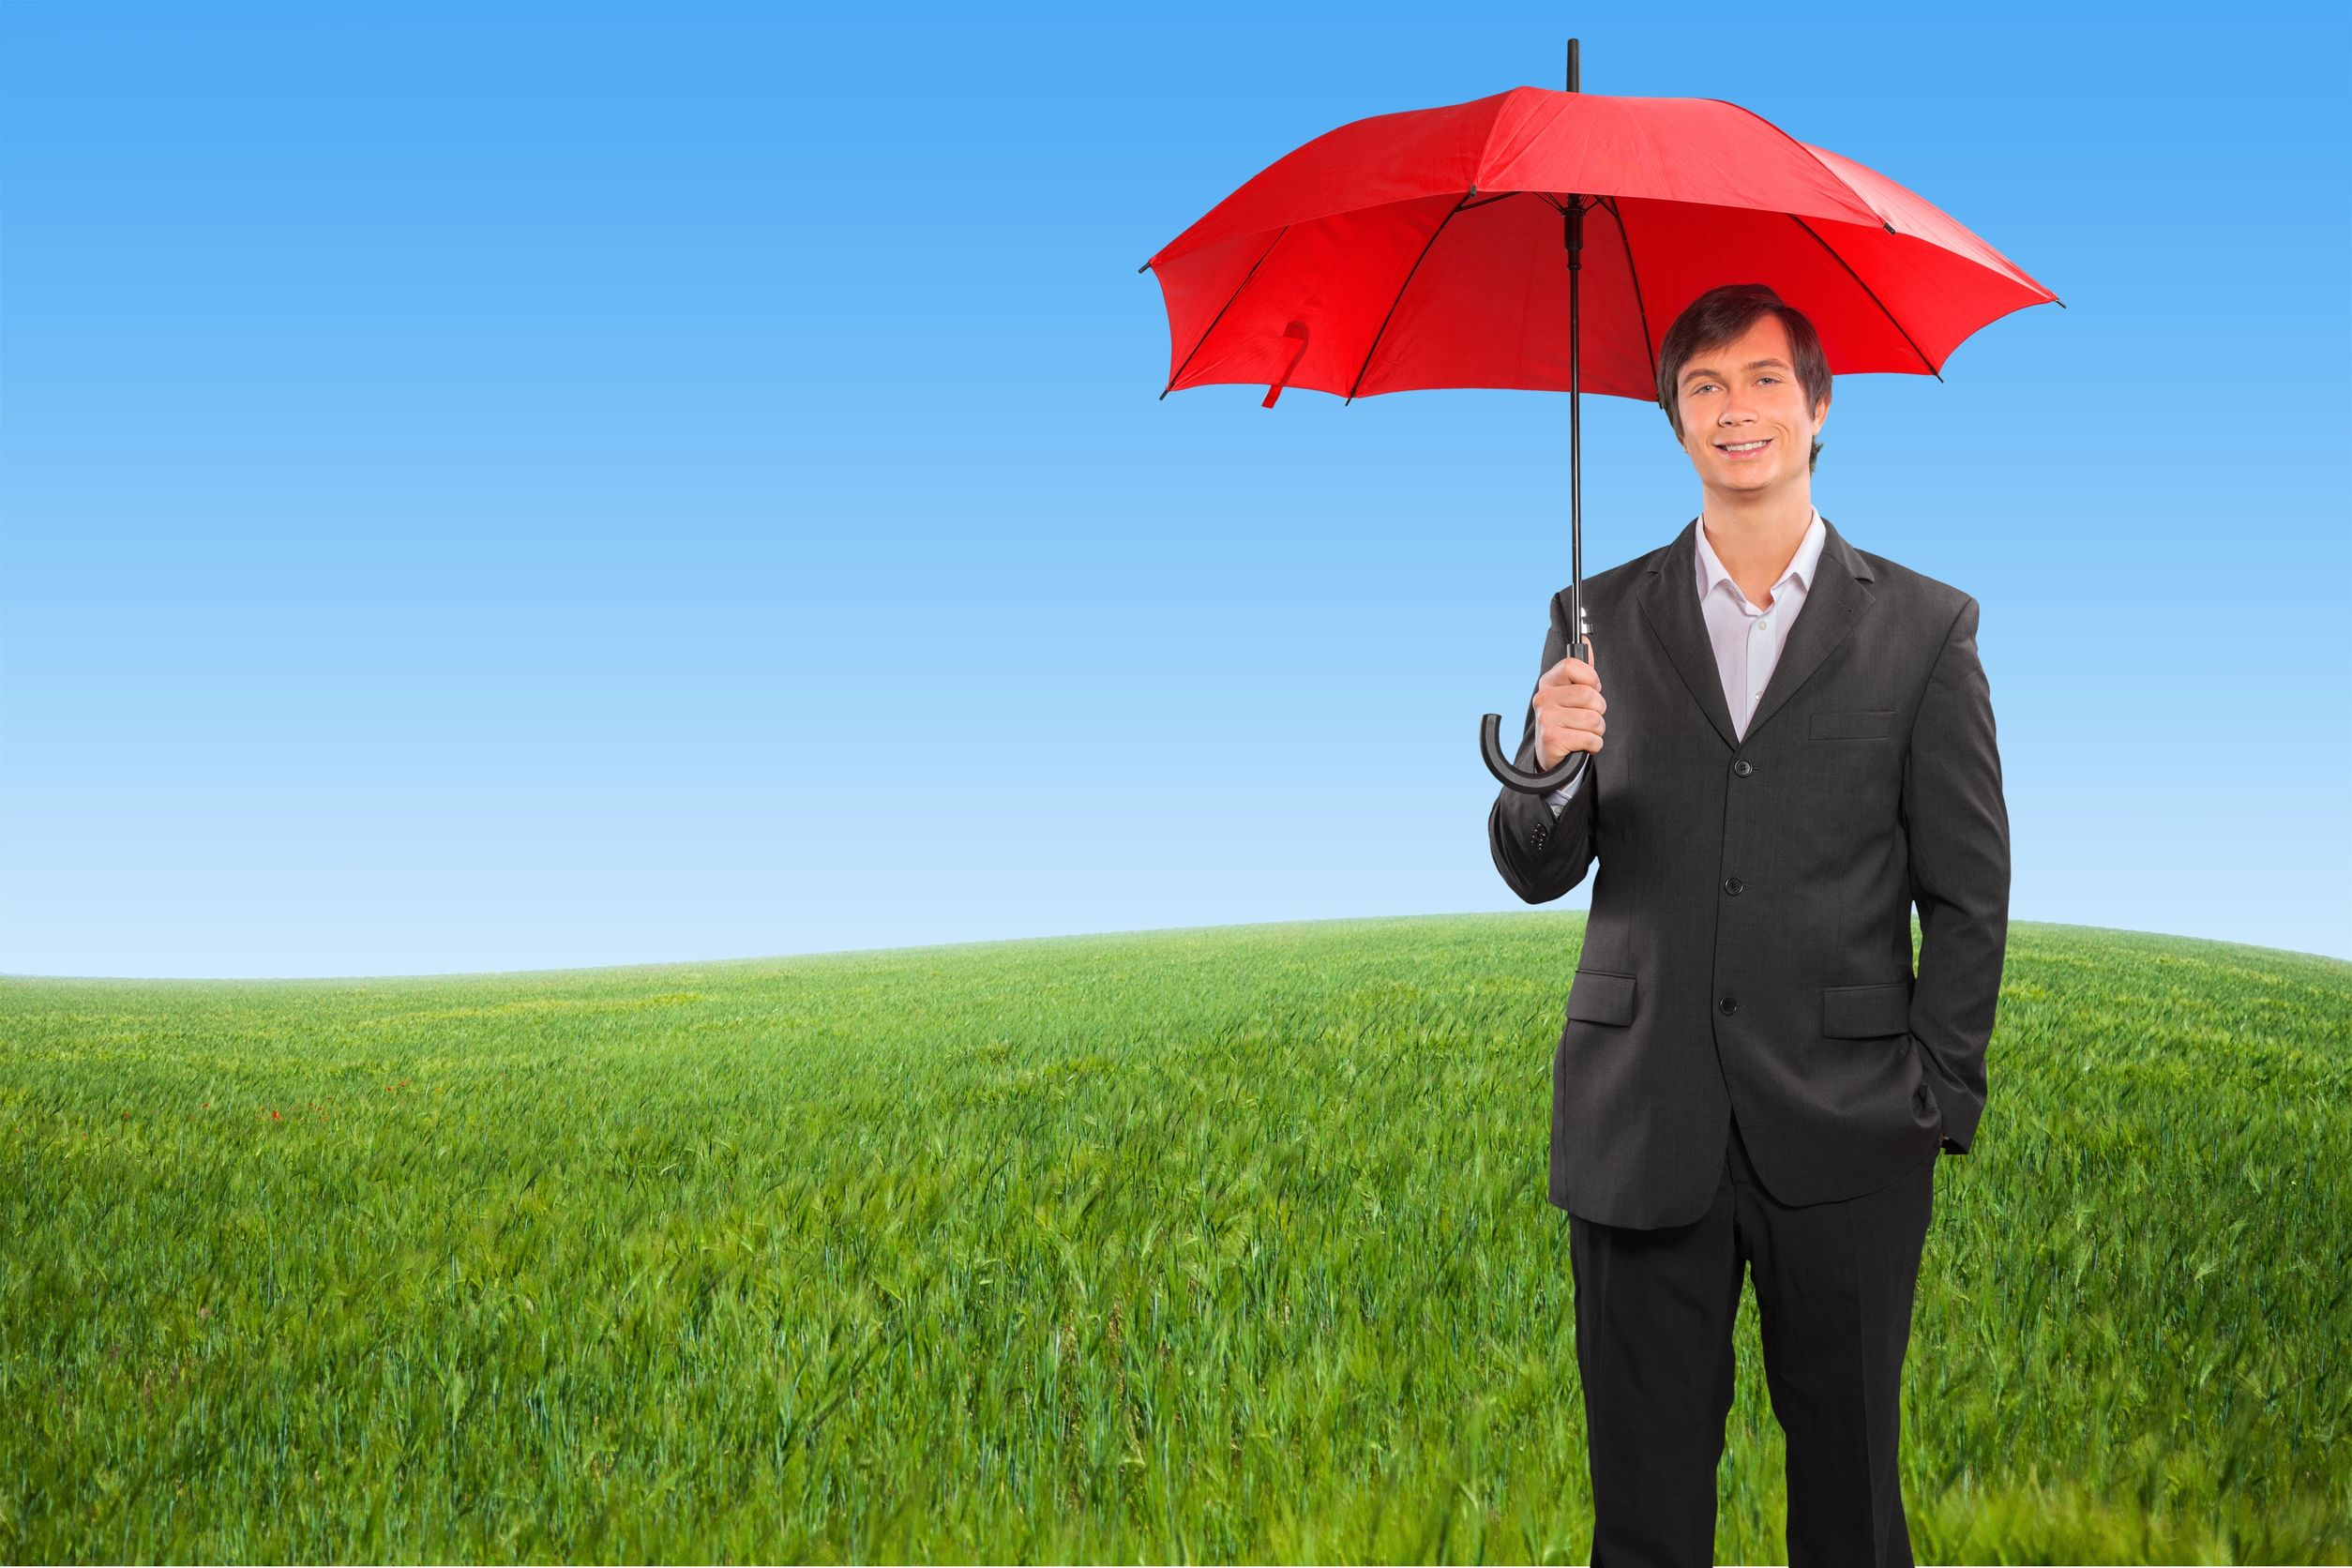 Michigan personal umbrella insurance quotes